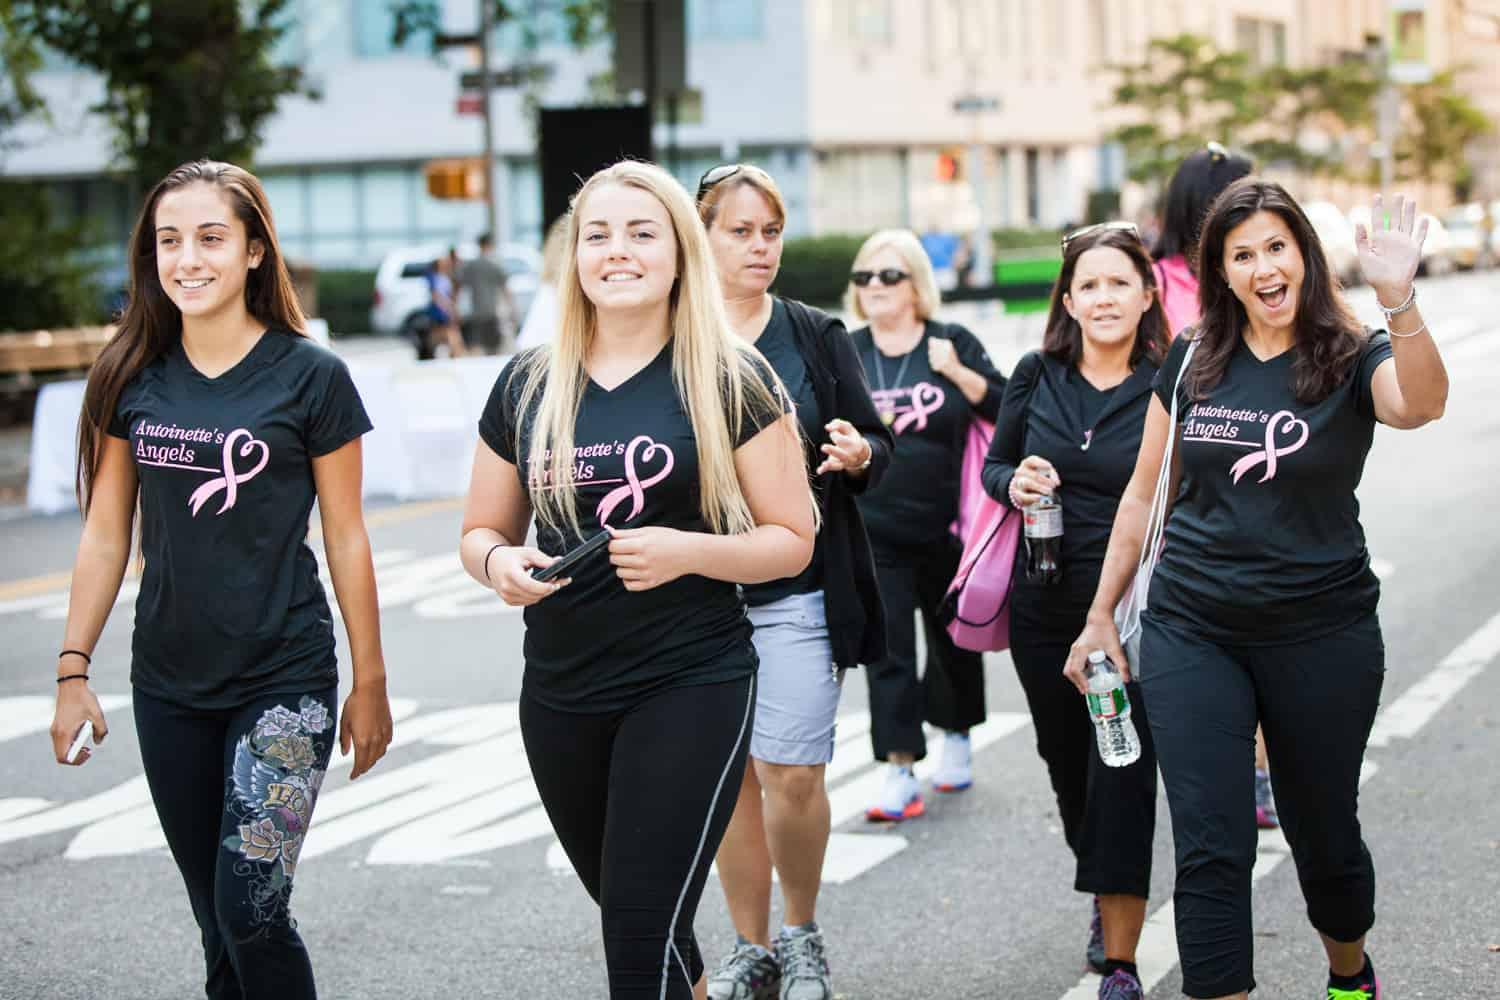 NYC Race for the Cure photos of group of supporters wearing black outfits